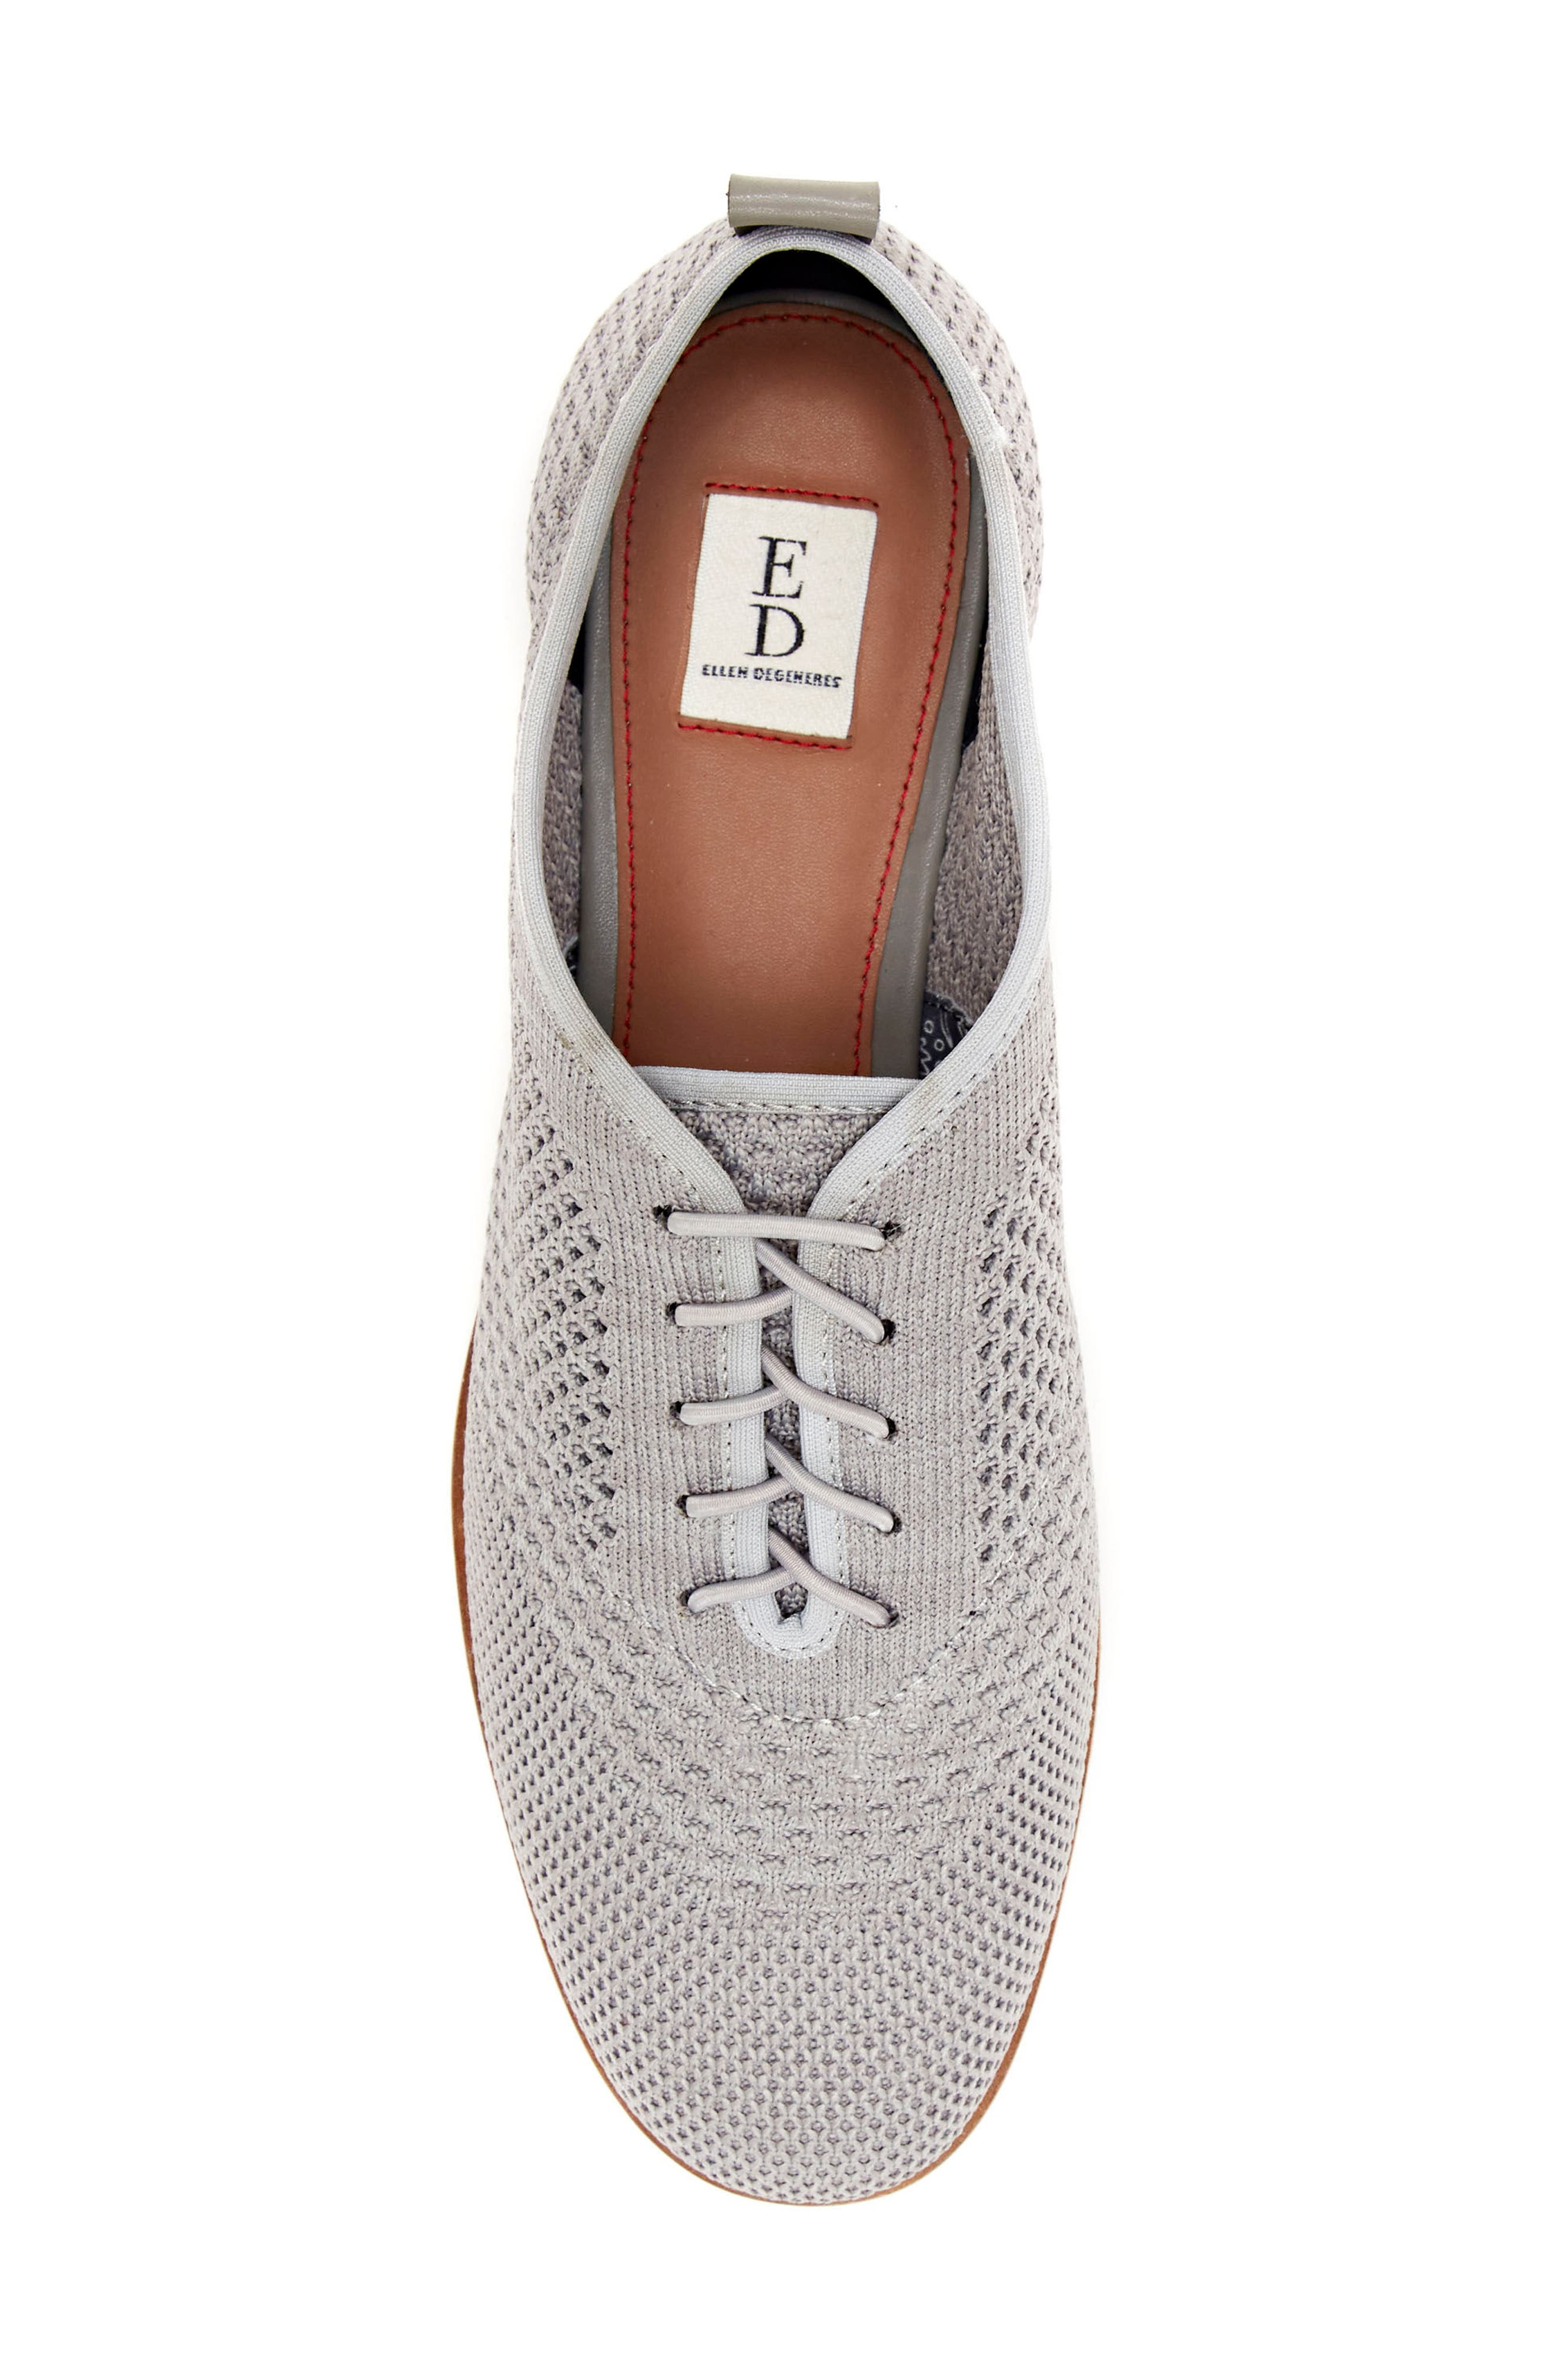 Lucerne Knit Oxford,                             Alternate thumbnail 4, color,                             HEATHER GREY TEXTILE FABRIC